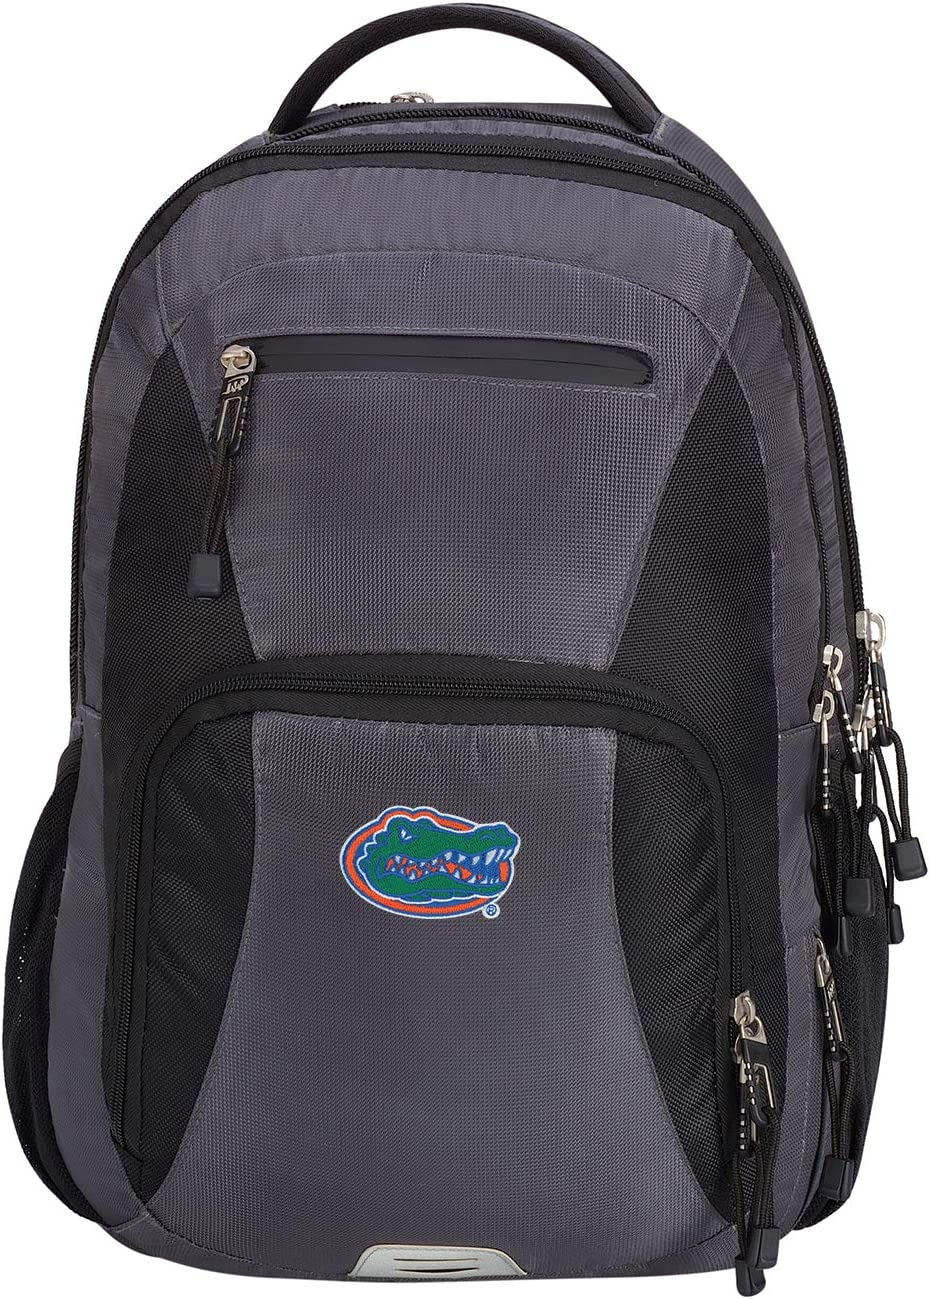 Officially Licensed NCAA Turbine Backpack 19 Grey